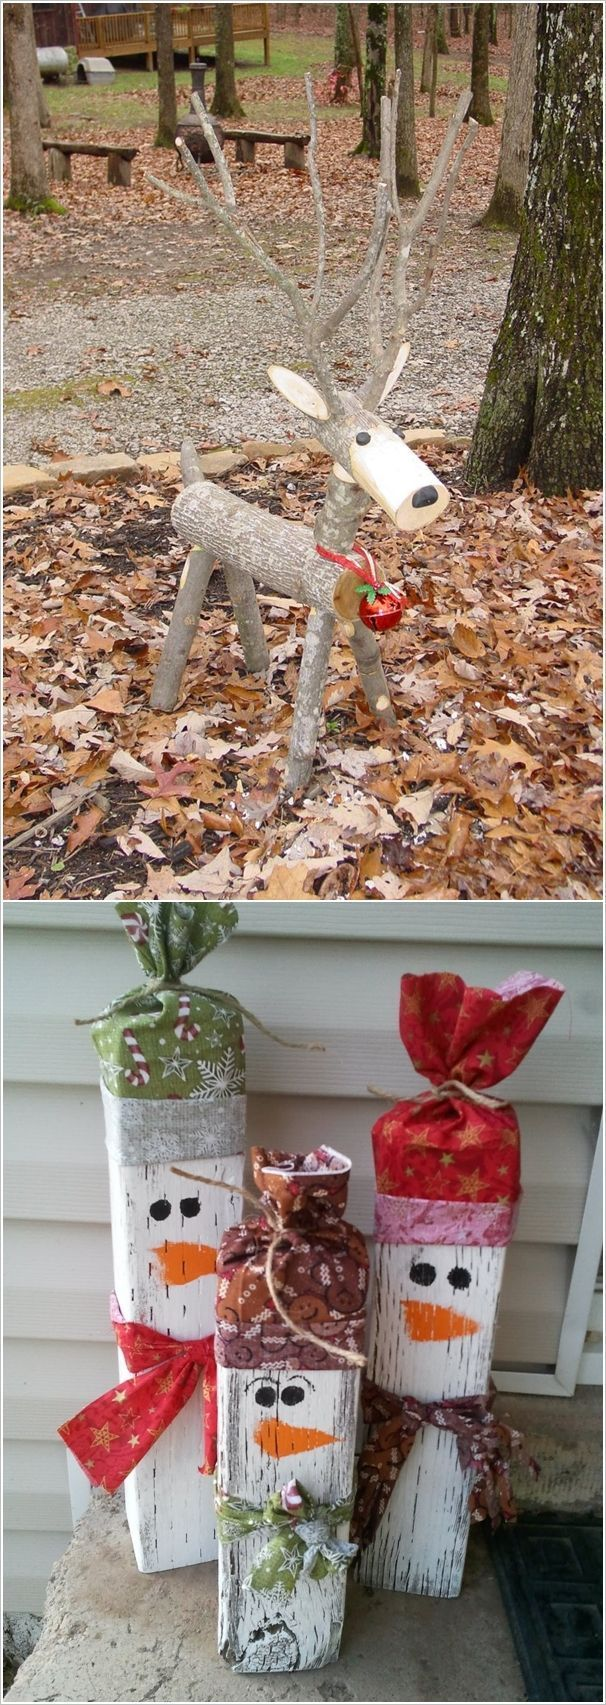 These wooden DIY outdoor winter and Christmas decorations are adorable! I love the reindeer, I want him!: